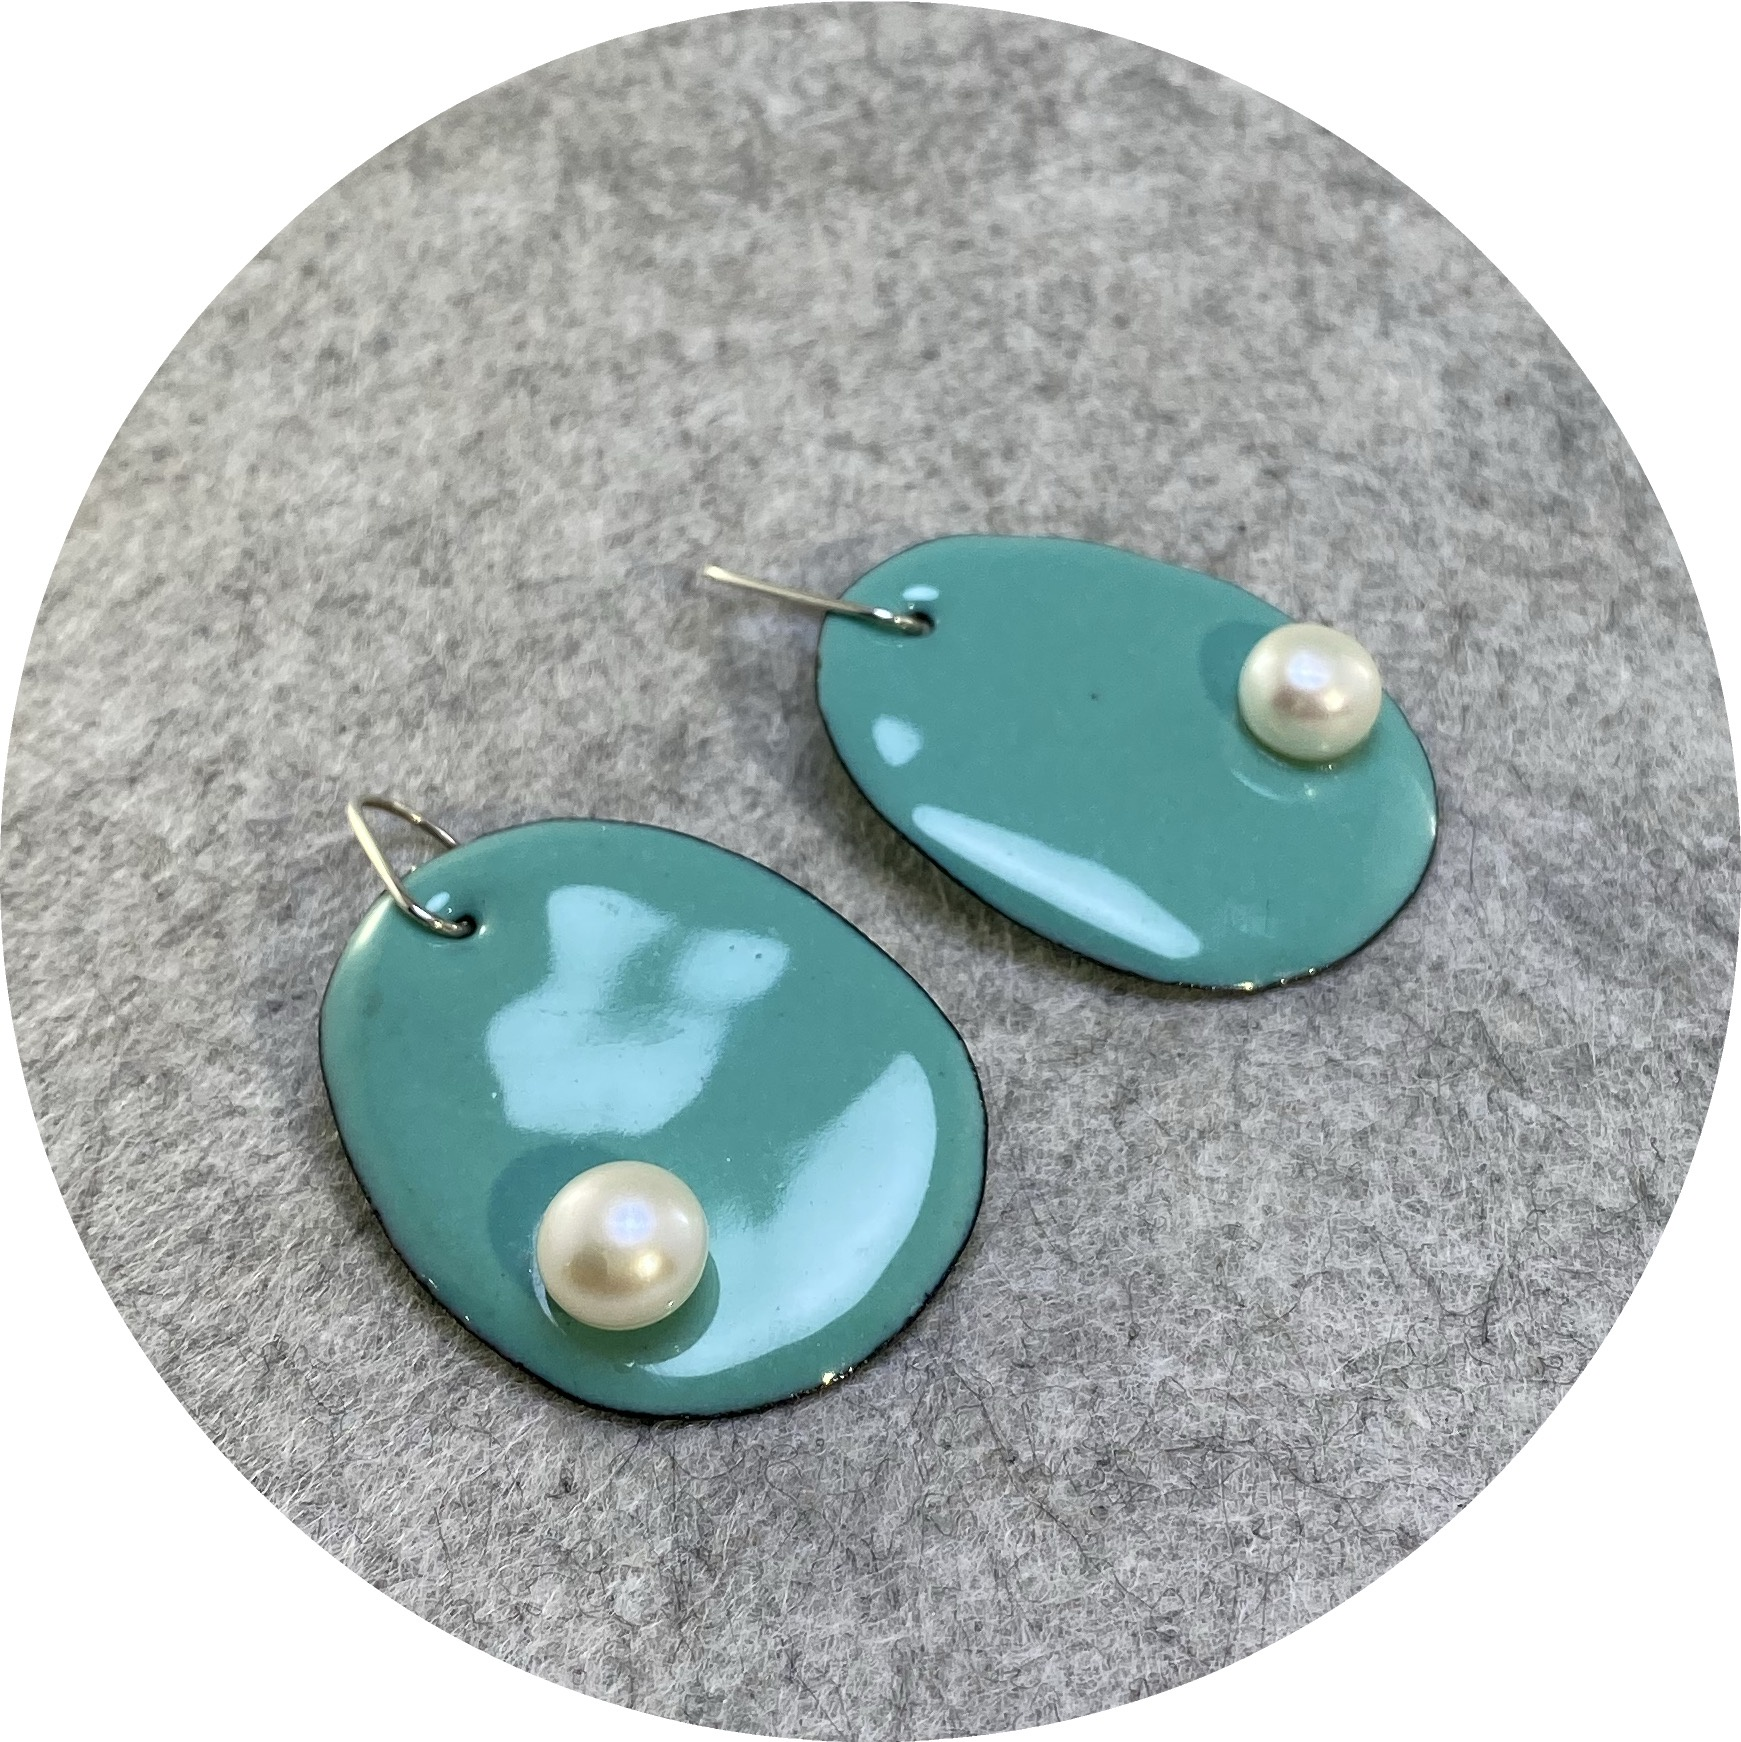 Jenna O'Brien- Pearlie Earrings- Mint green with fresh water pearl.